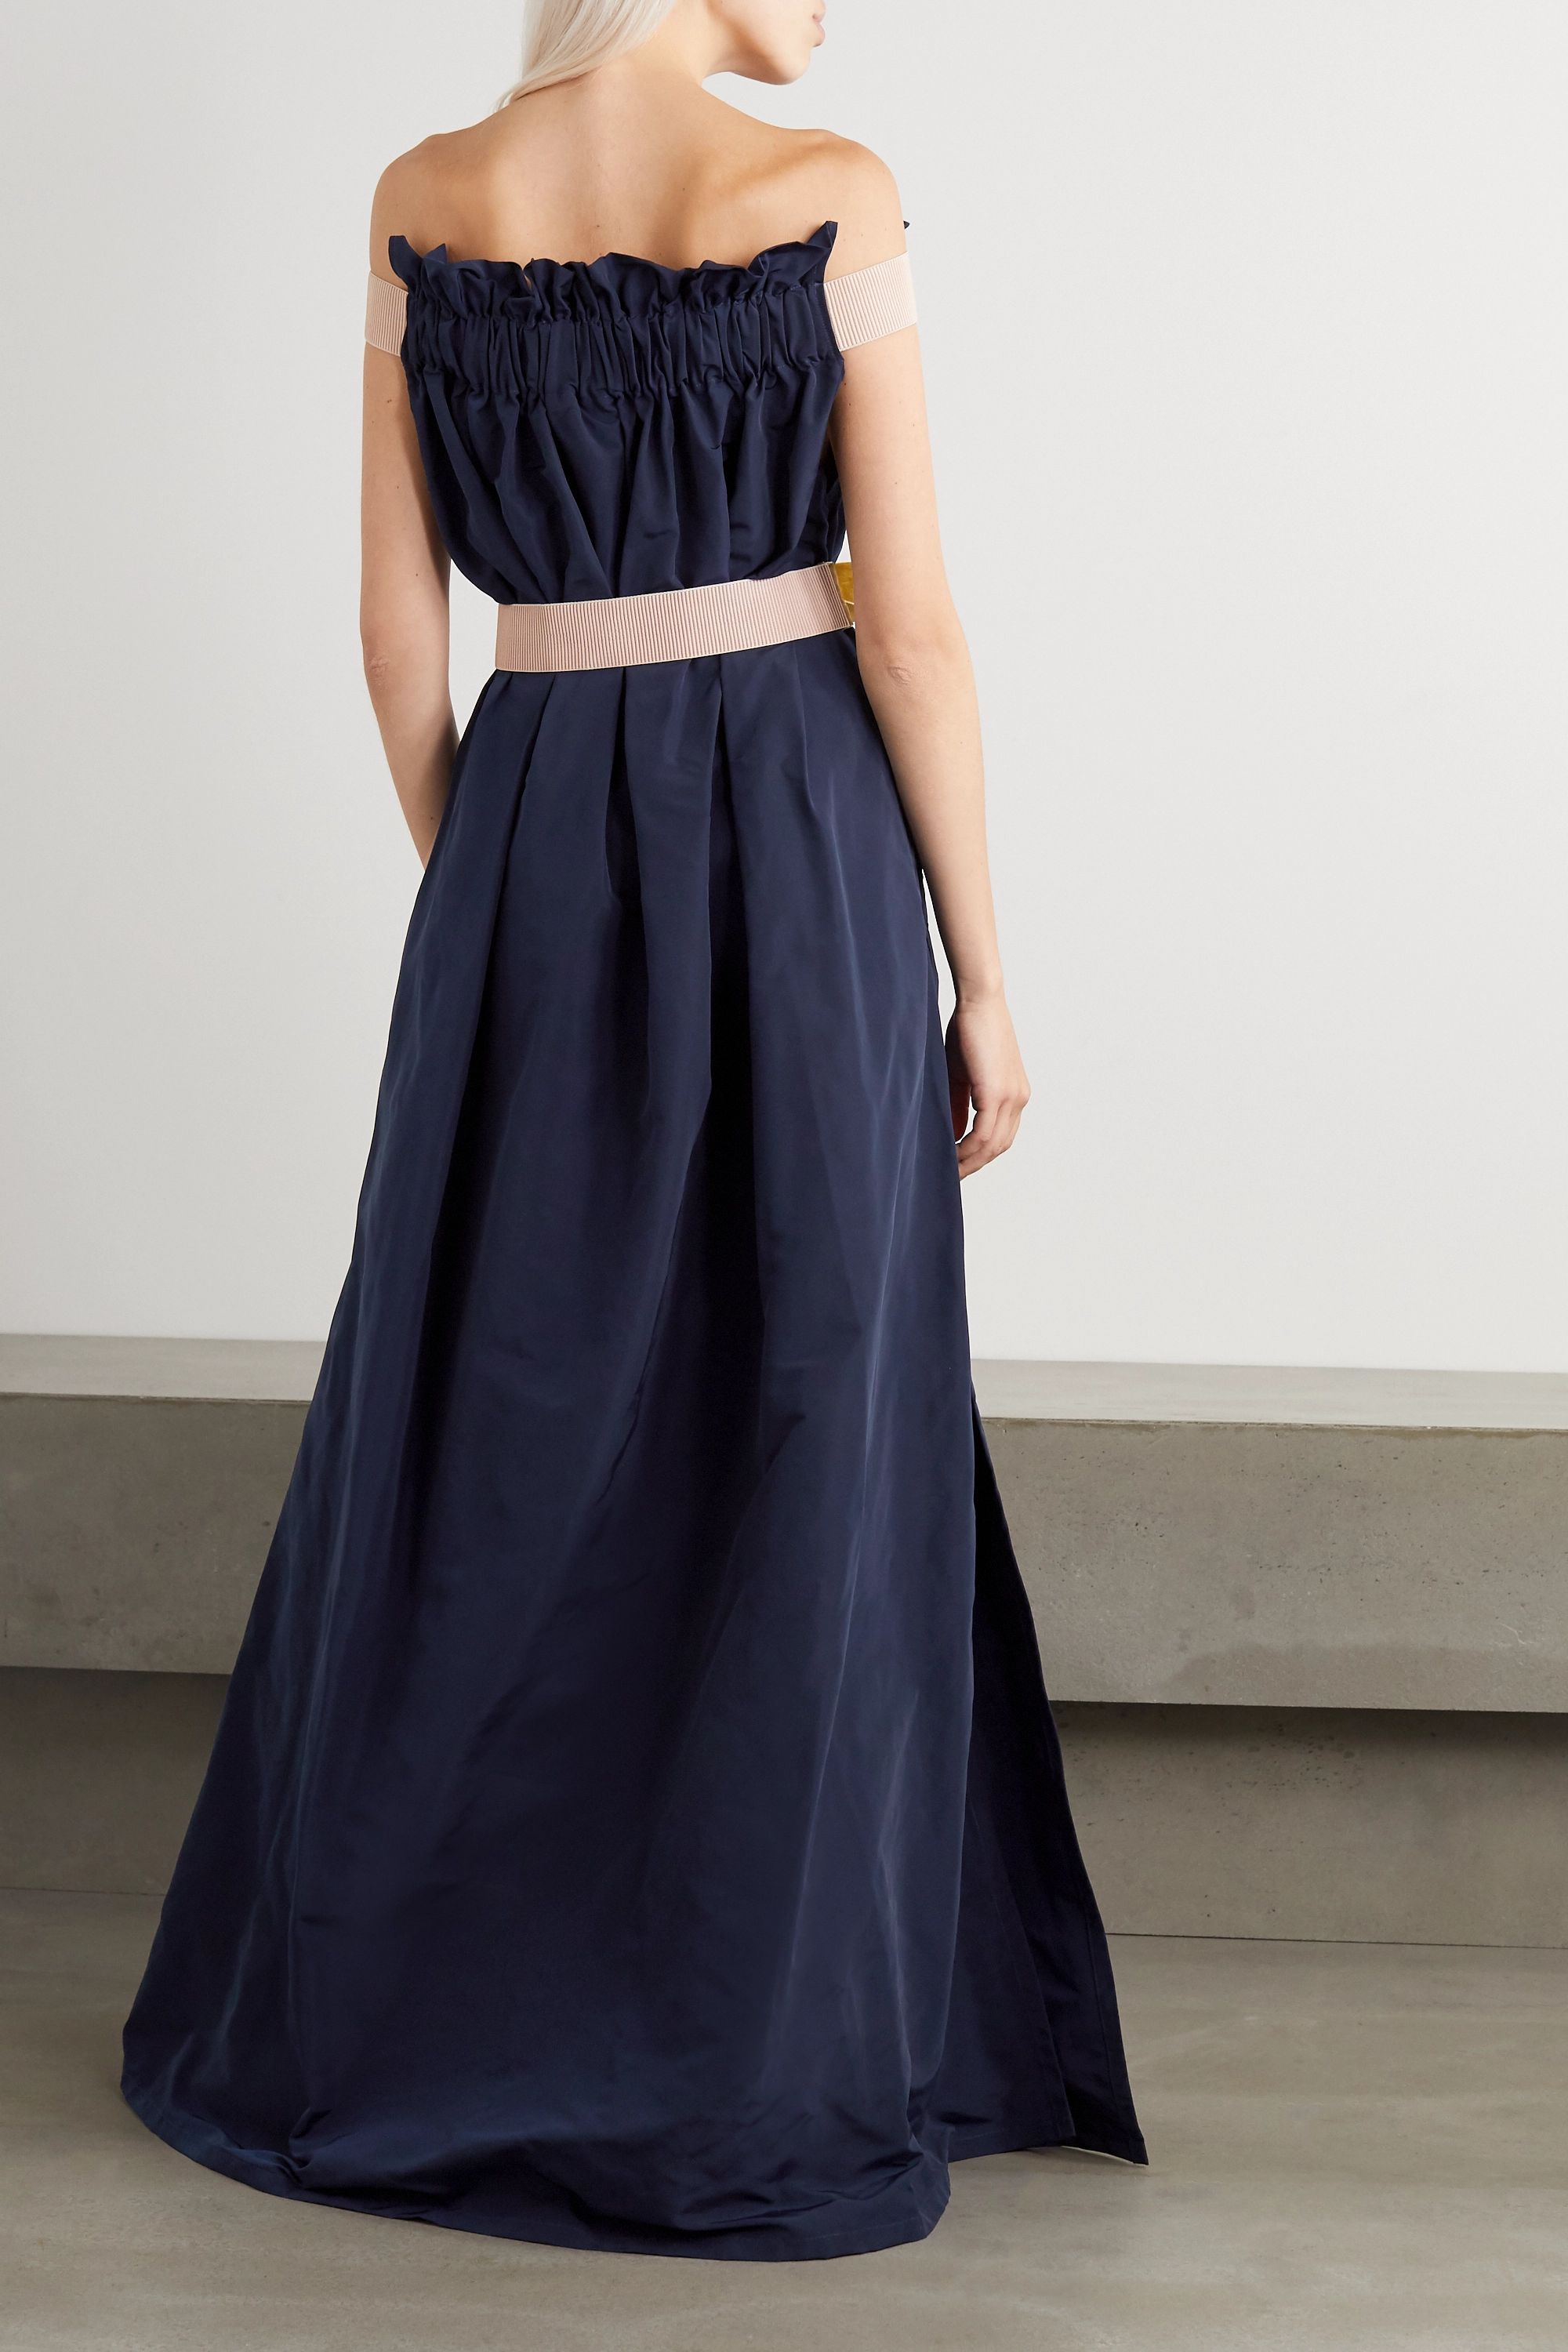 ARTCLUB Oenothera off-the-shoulder gathered taffeta maxi dress